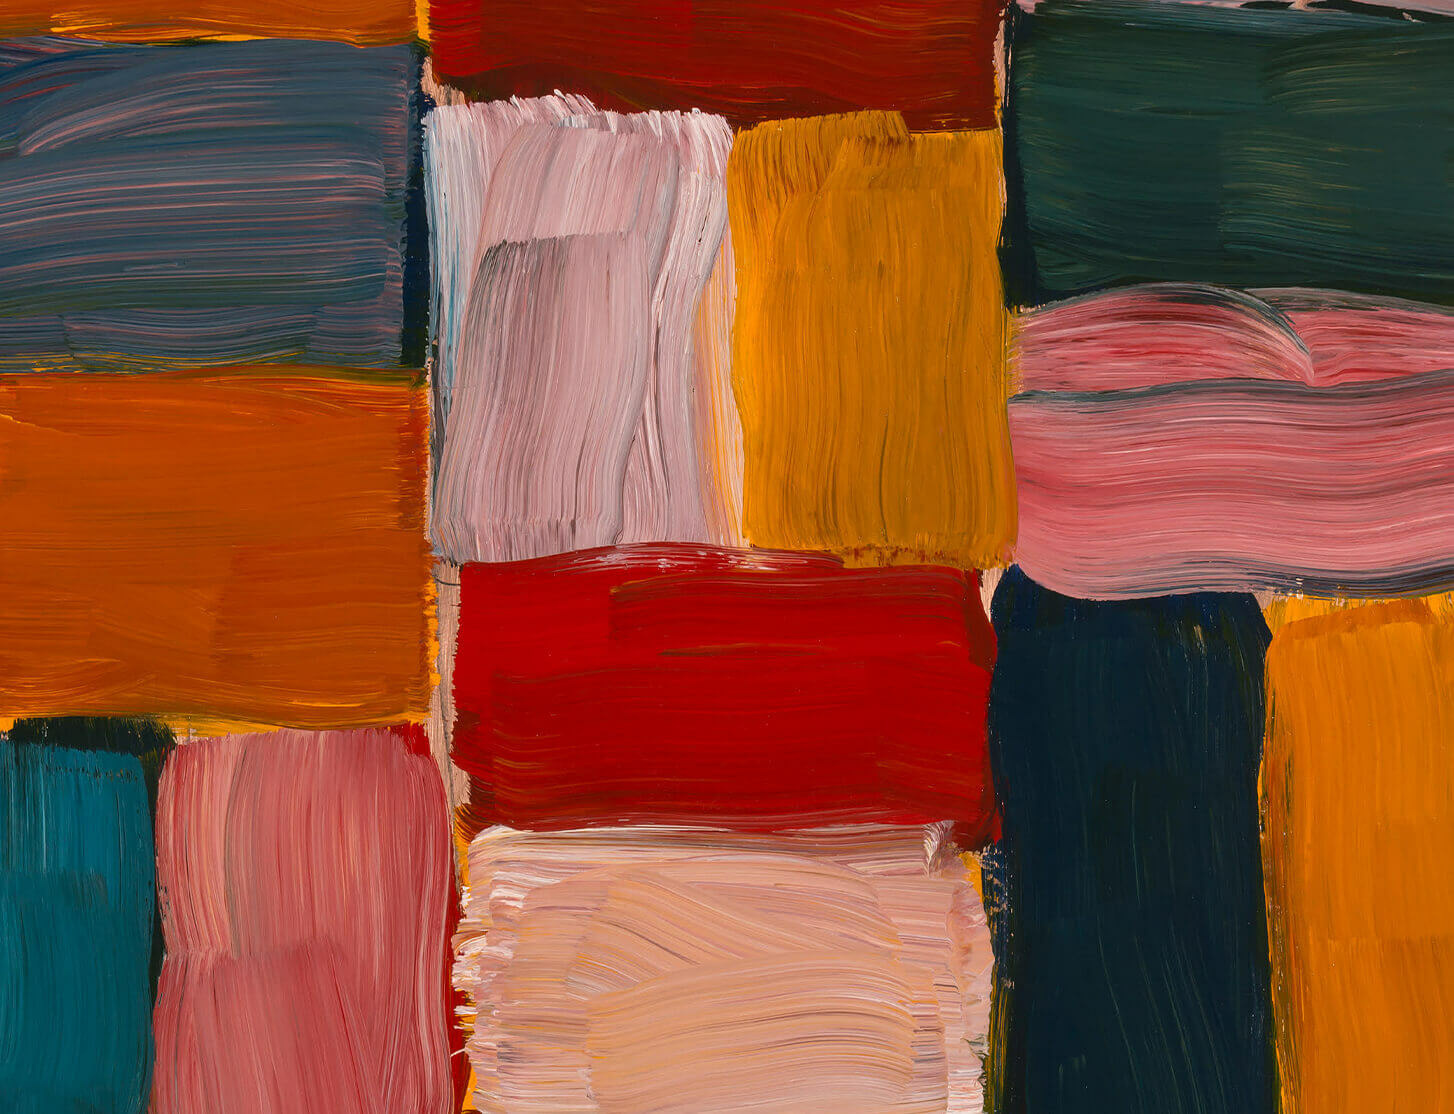 Sean Scully exhibition to open at Forum Paracelsus, St Moritz